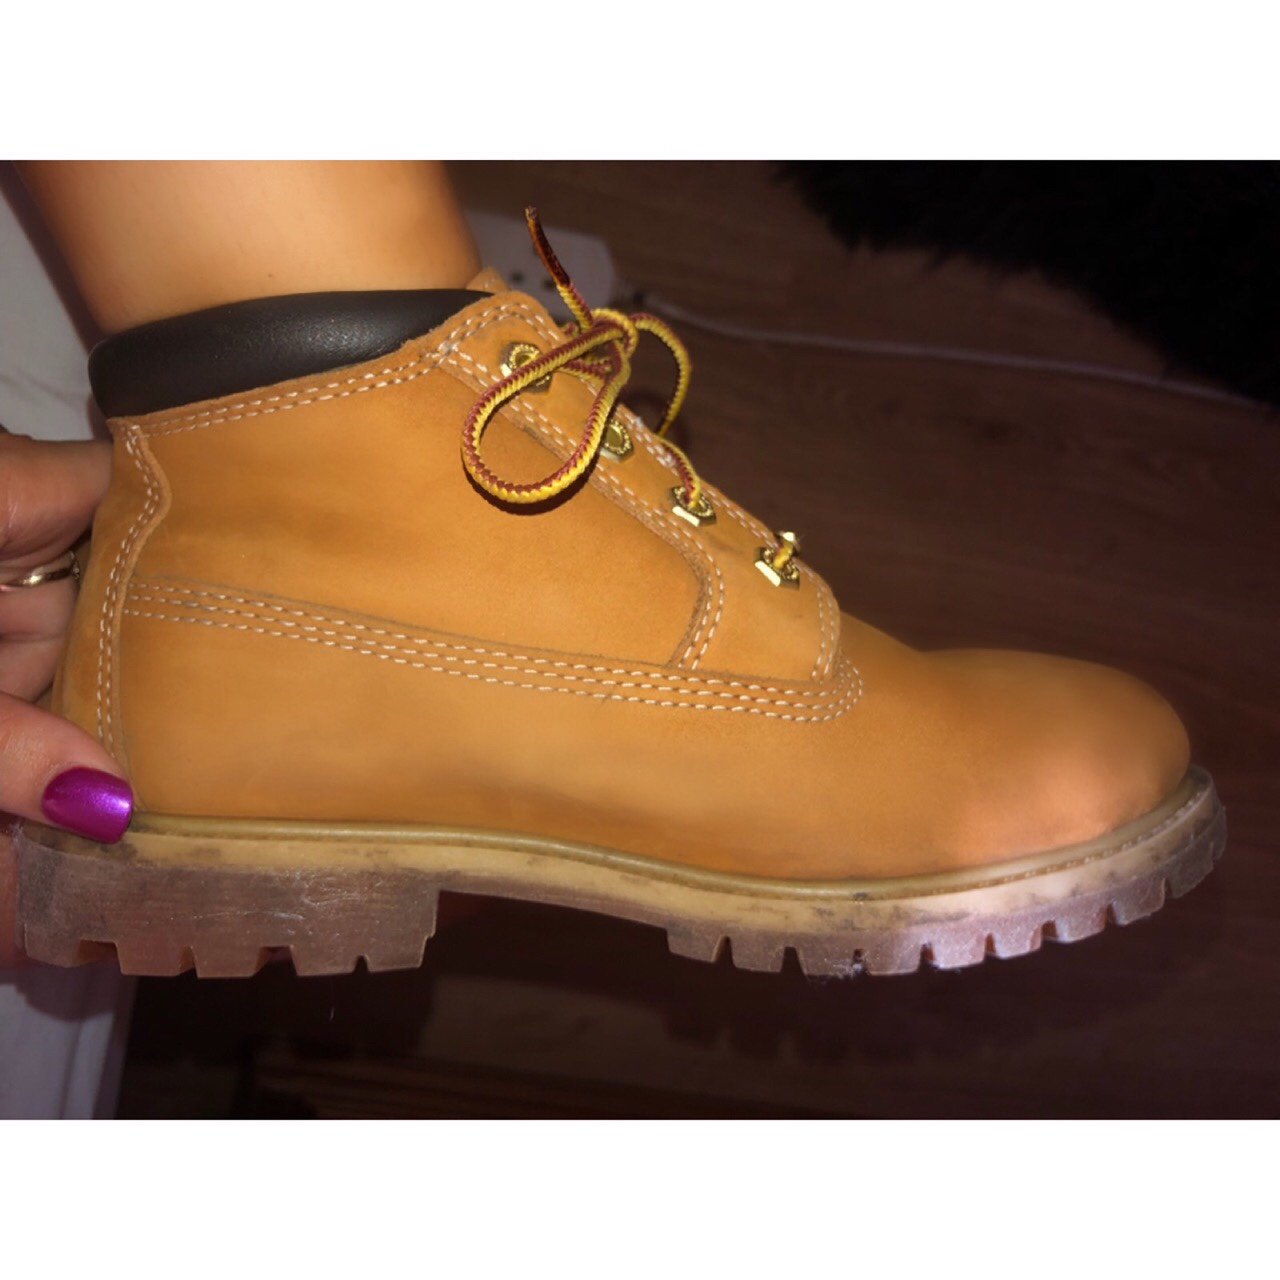 new arrival differently 2019 real Ladies low cut Timberland boots - Size 4. Perfect... - Depop